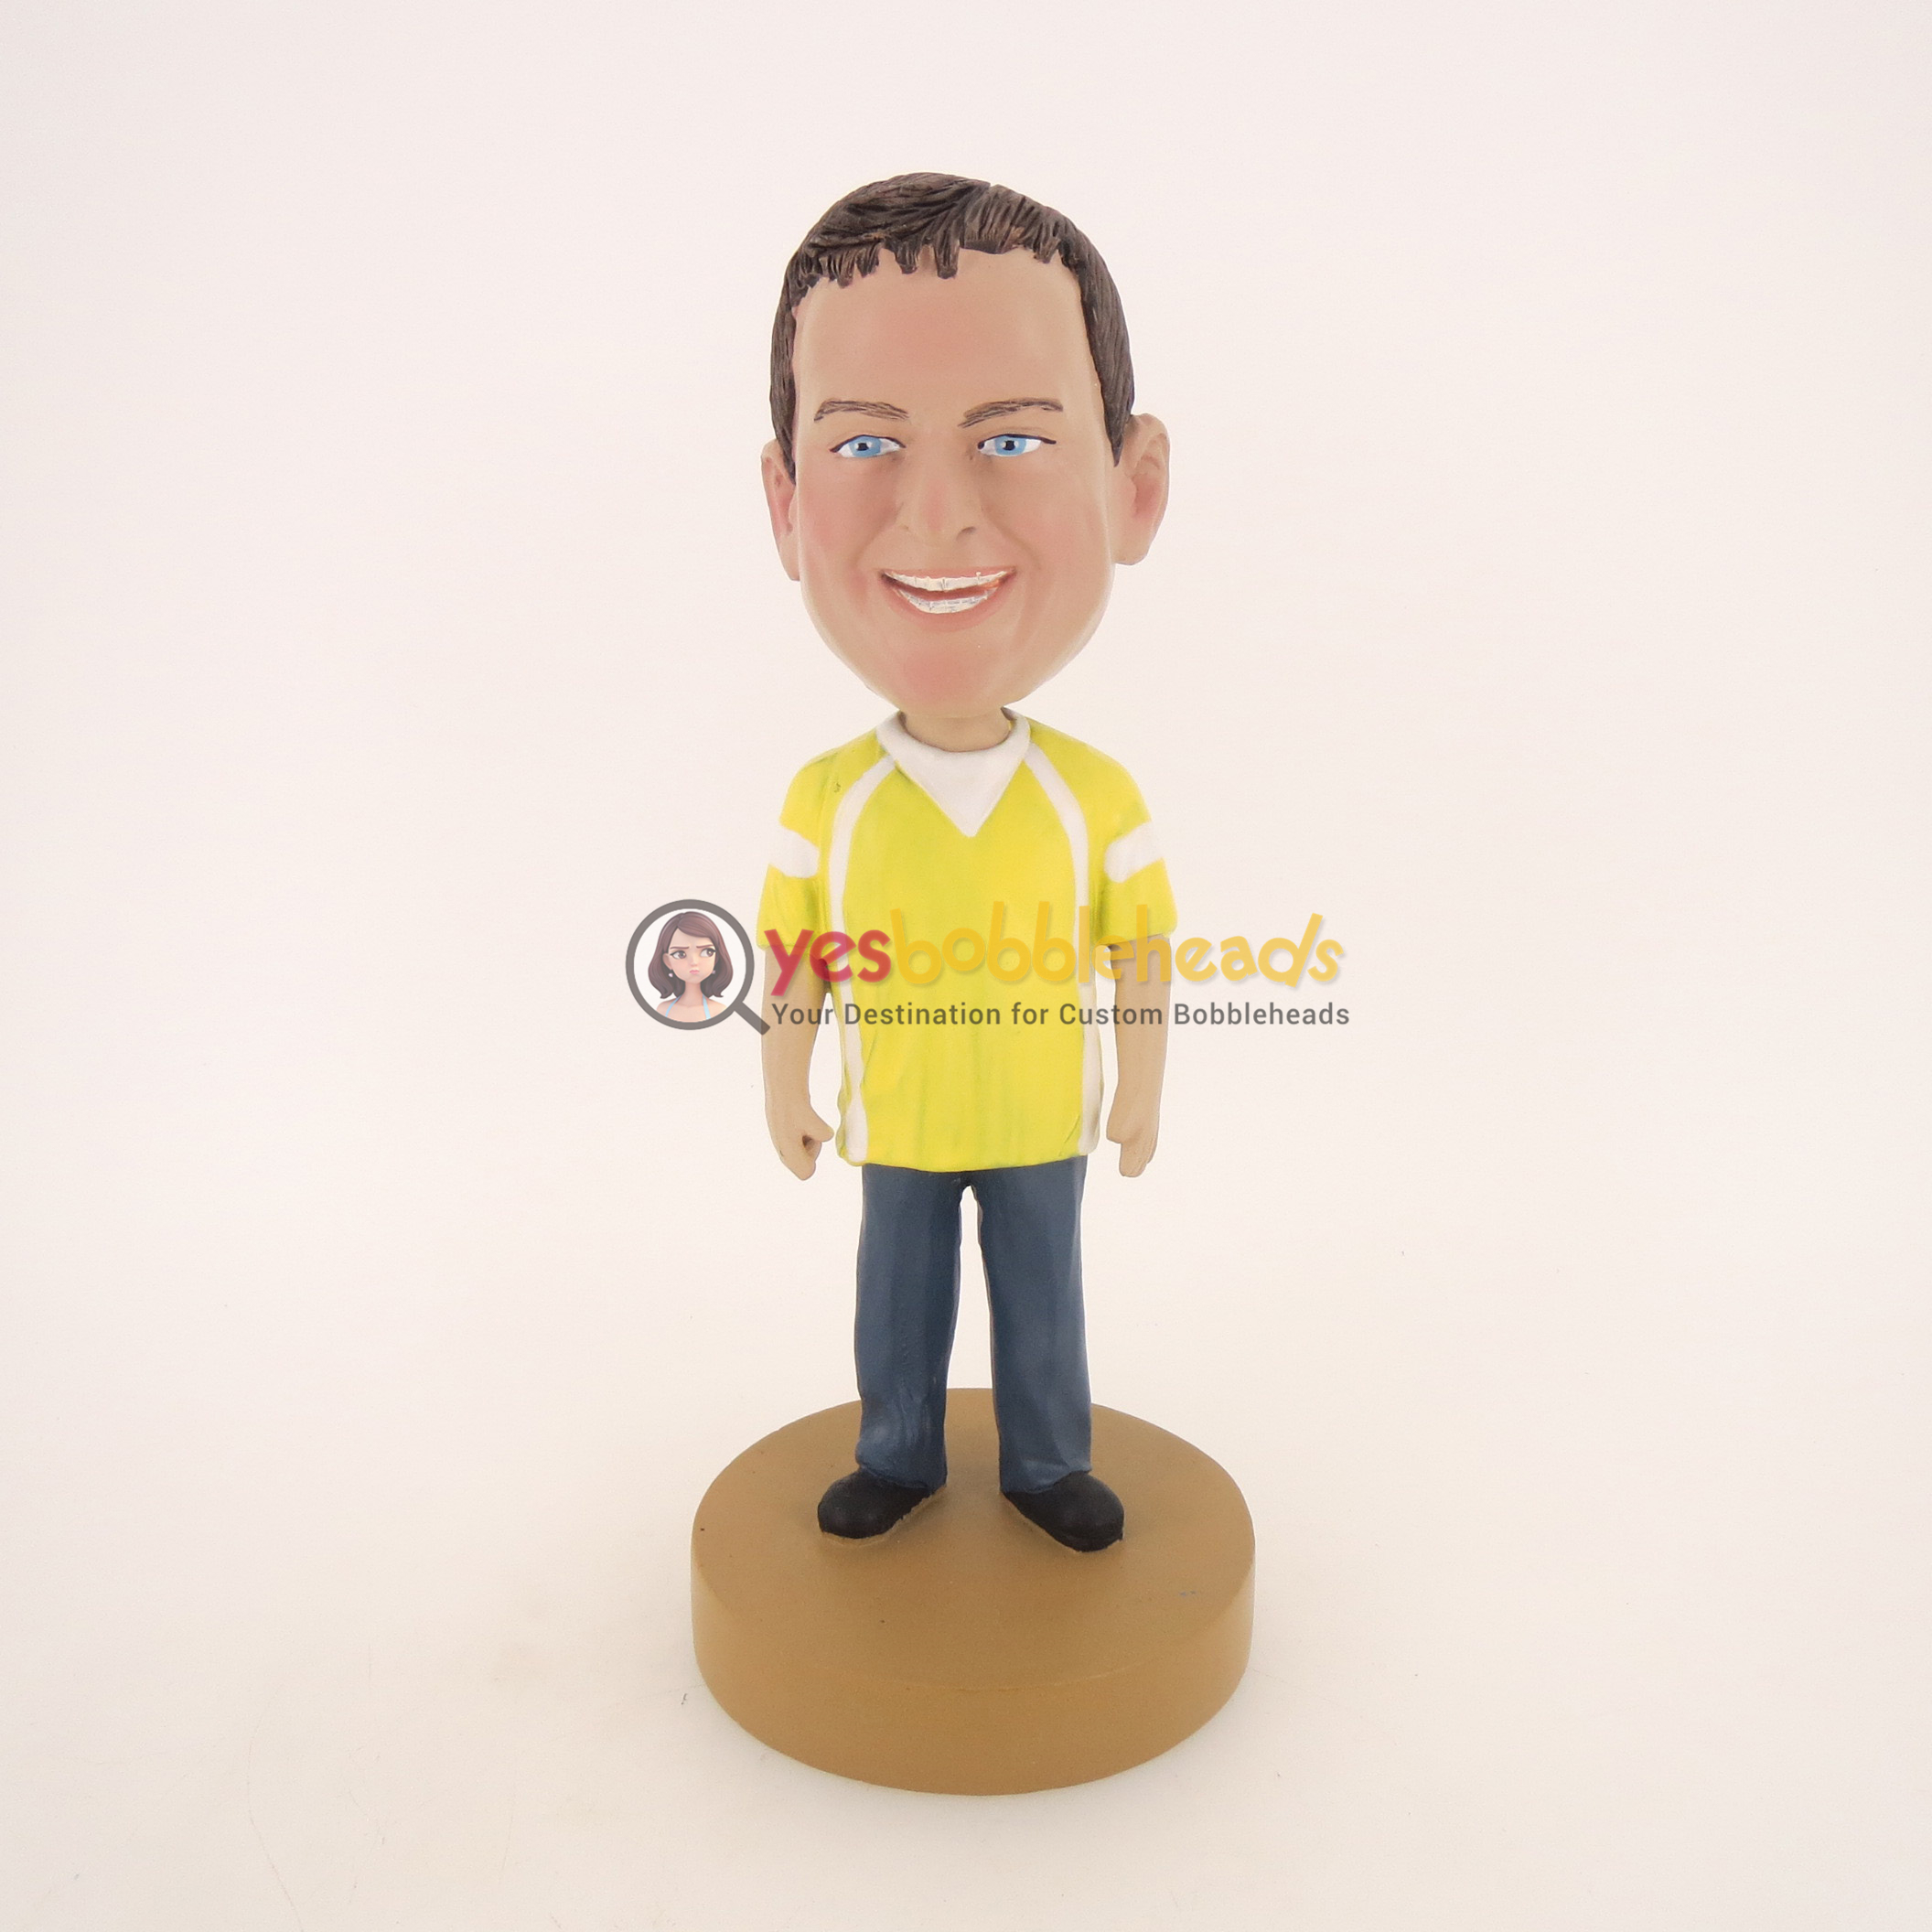 Picture of Custom Bobblehead Doll: Smiling Big Boy